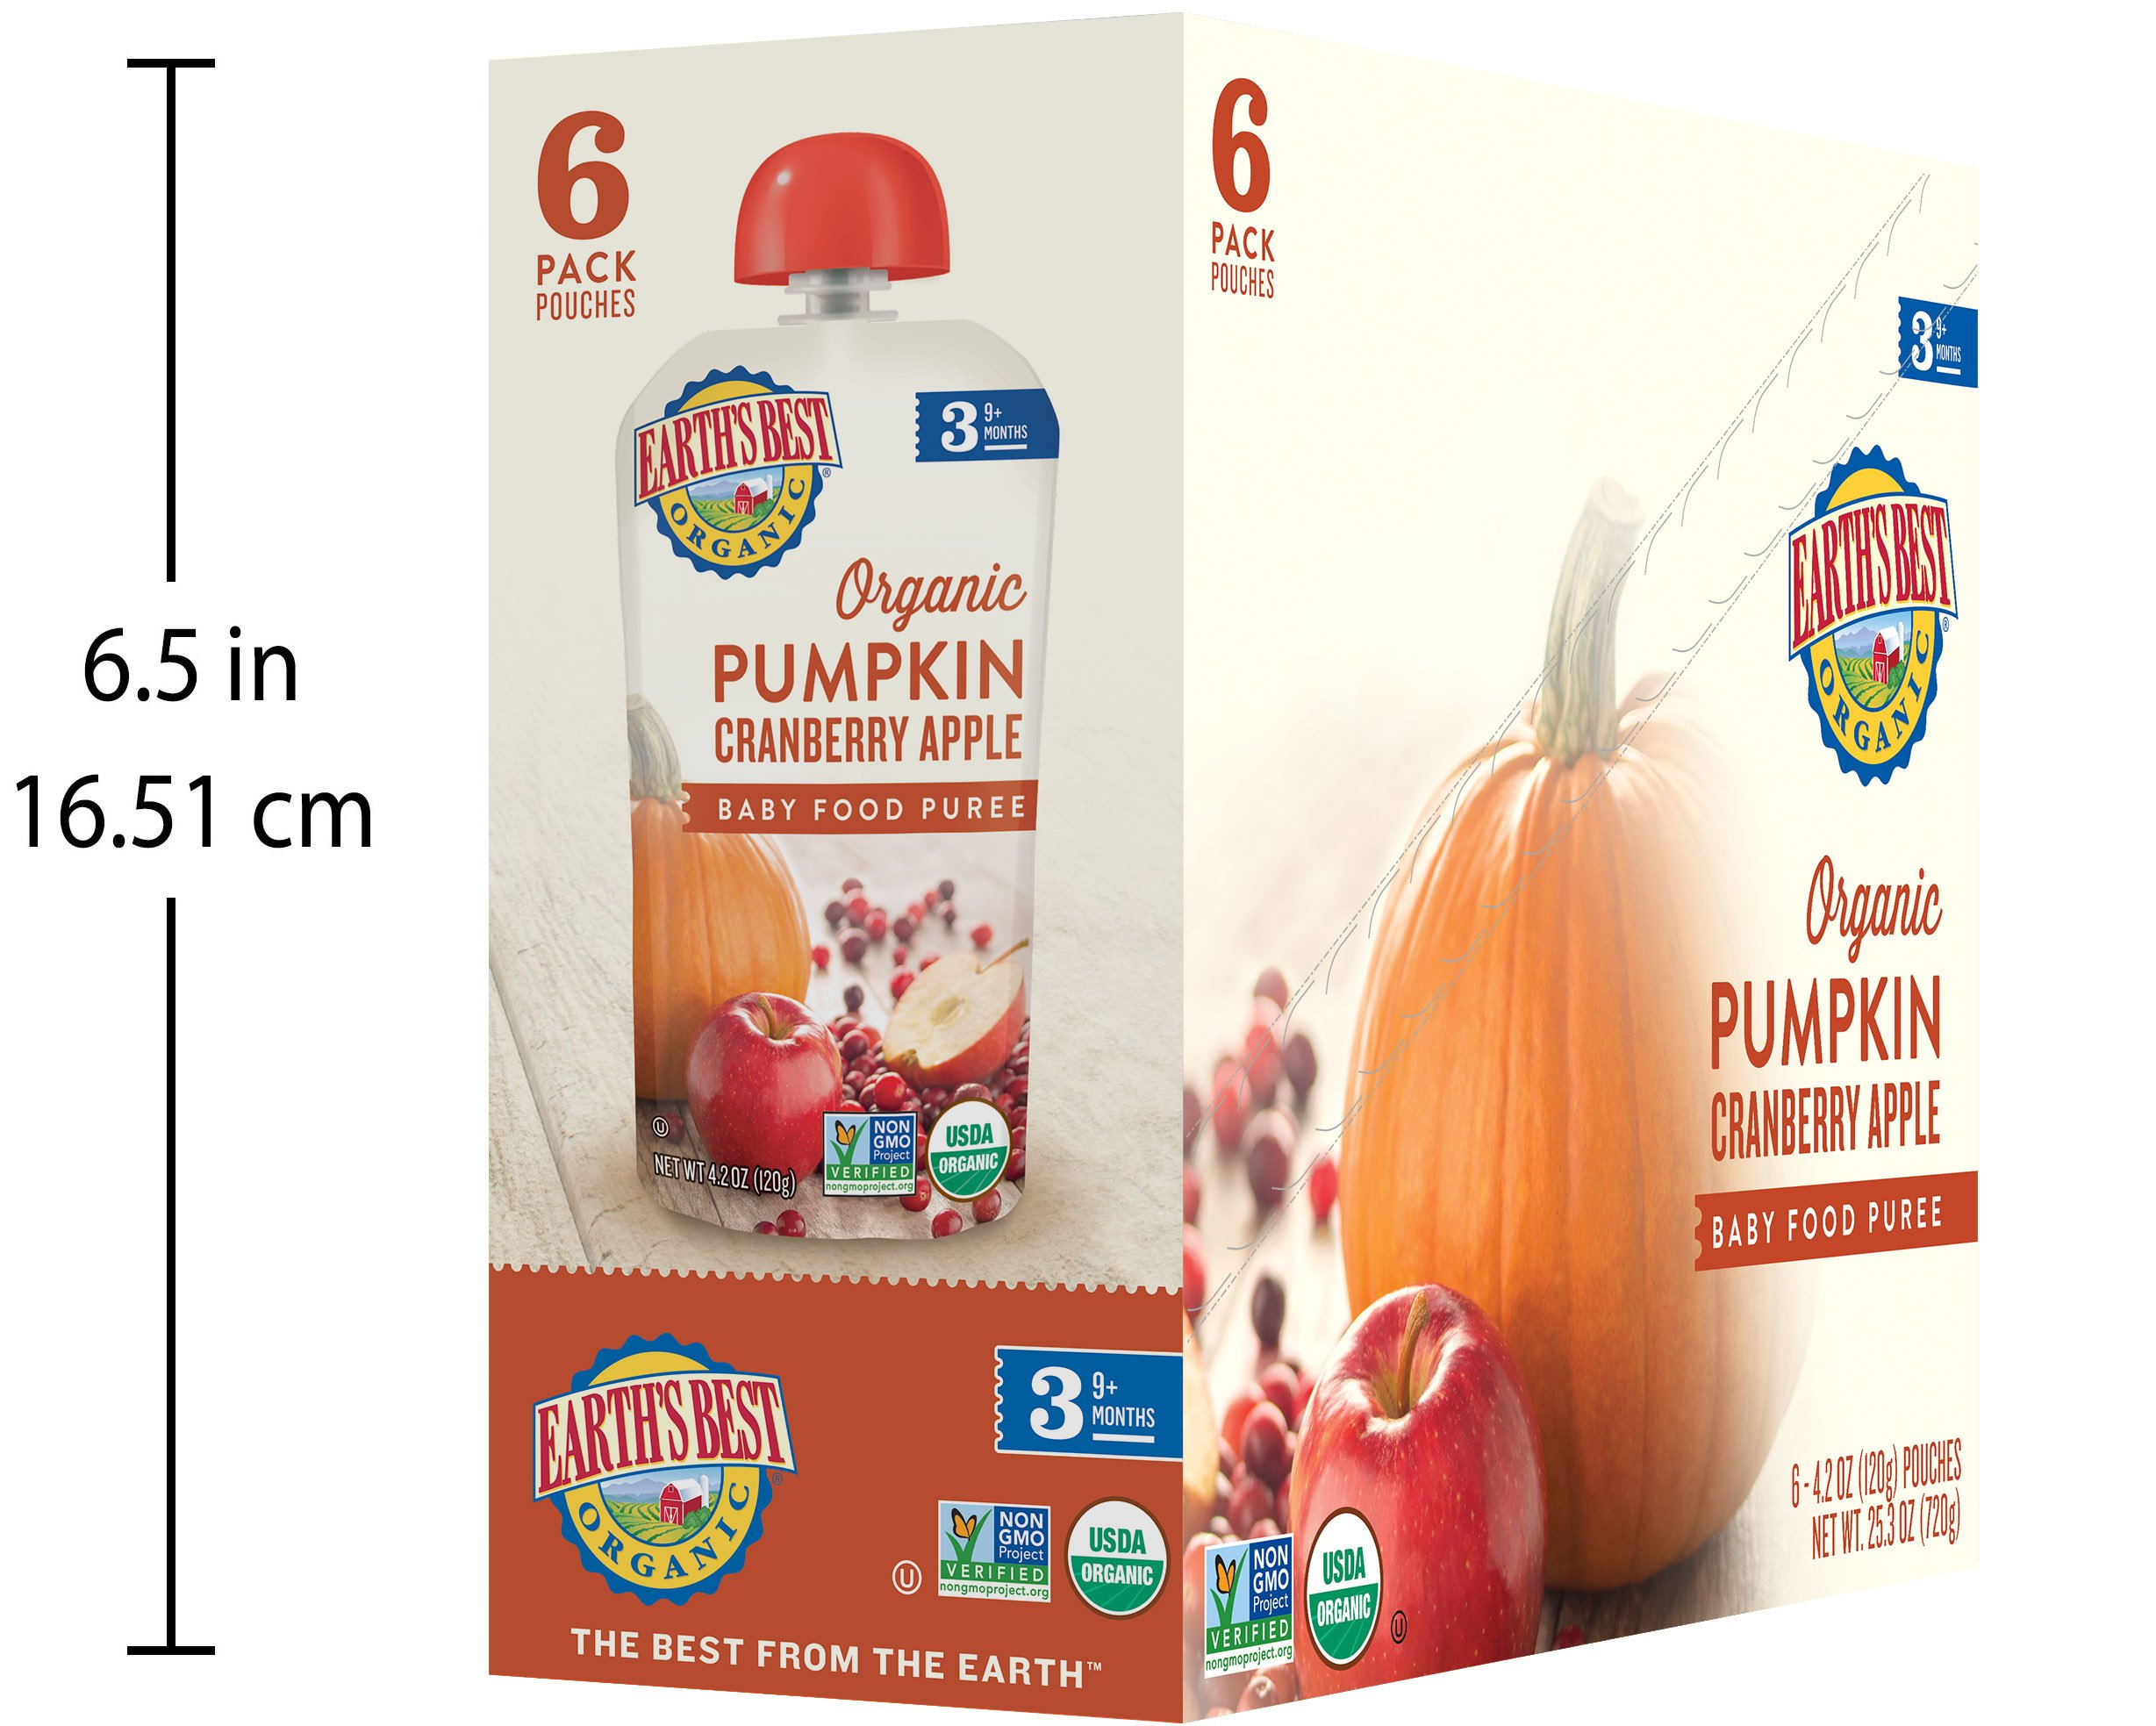 Earth's Best Organic Stage 3, Pumpkin, Cranberry & Apple, 4.2 Ounce Pouch (Pack of 12) (Packaging May Vary) by Earth's Best (Image #8)